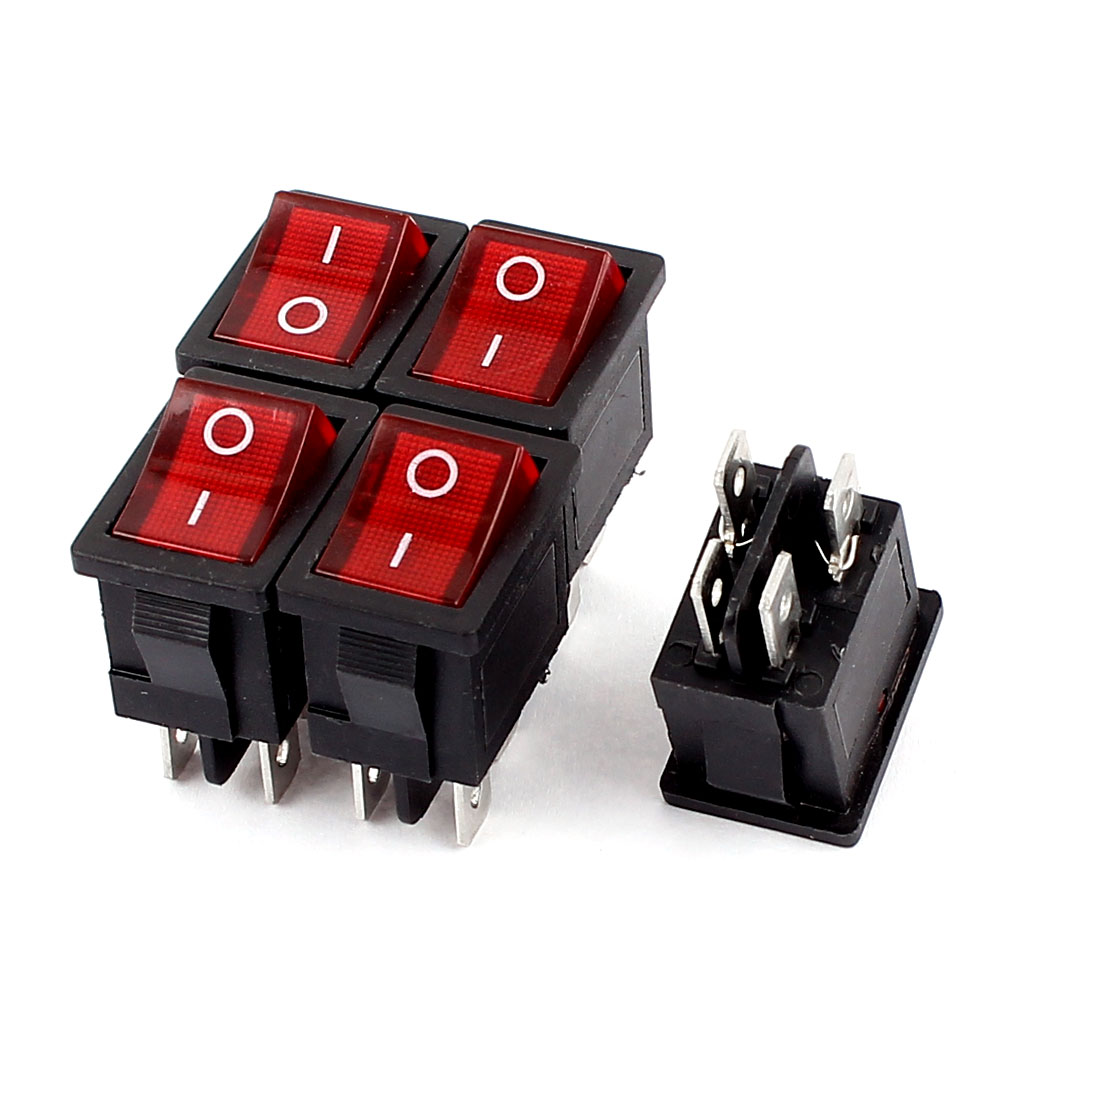 5 Pcs Red Light DPST I/O 2 Position Boat Rocker Switch 6A 250VAC 10A 125V